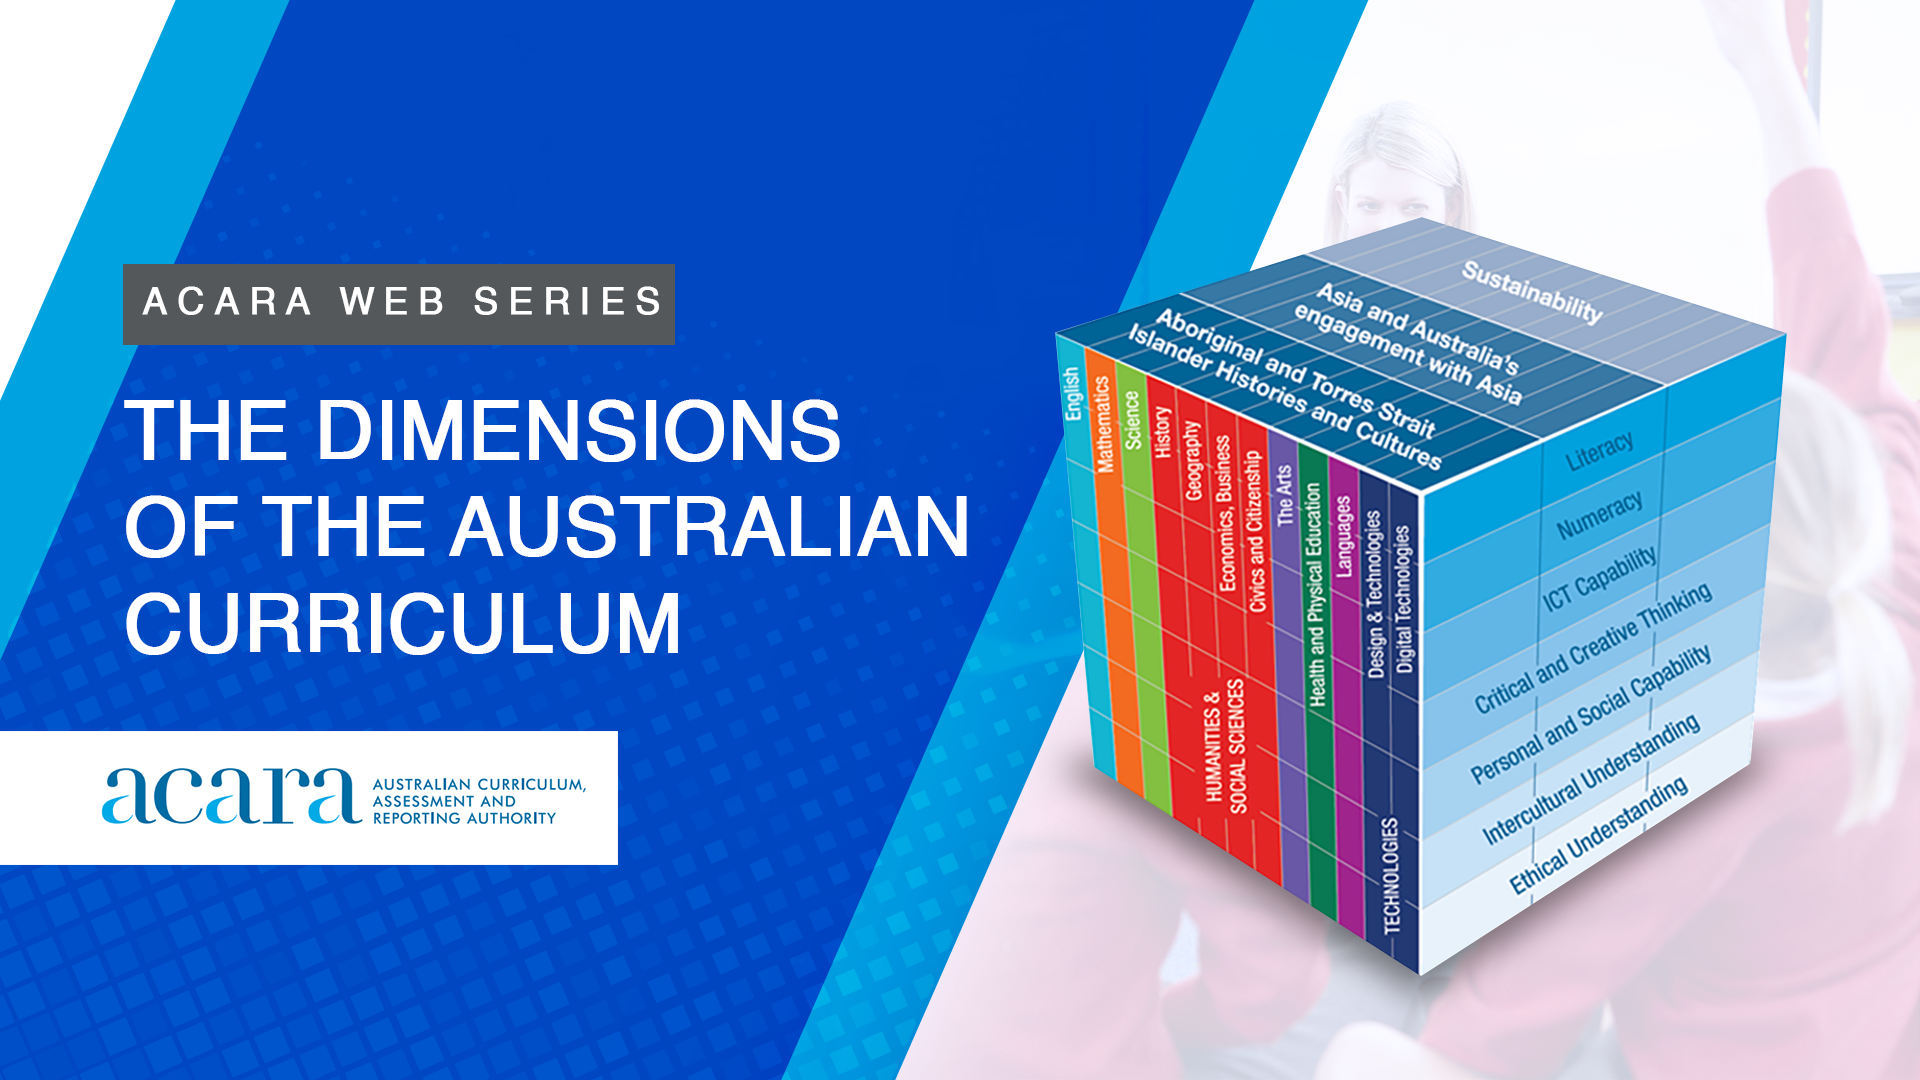 The dimensions of the Australian Curriculum